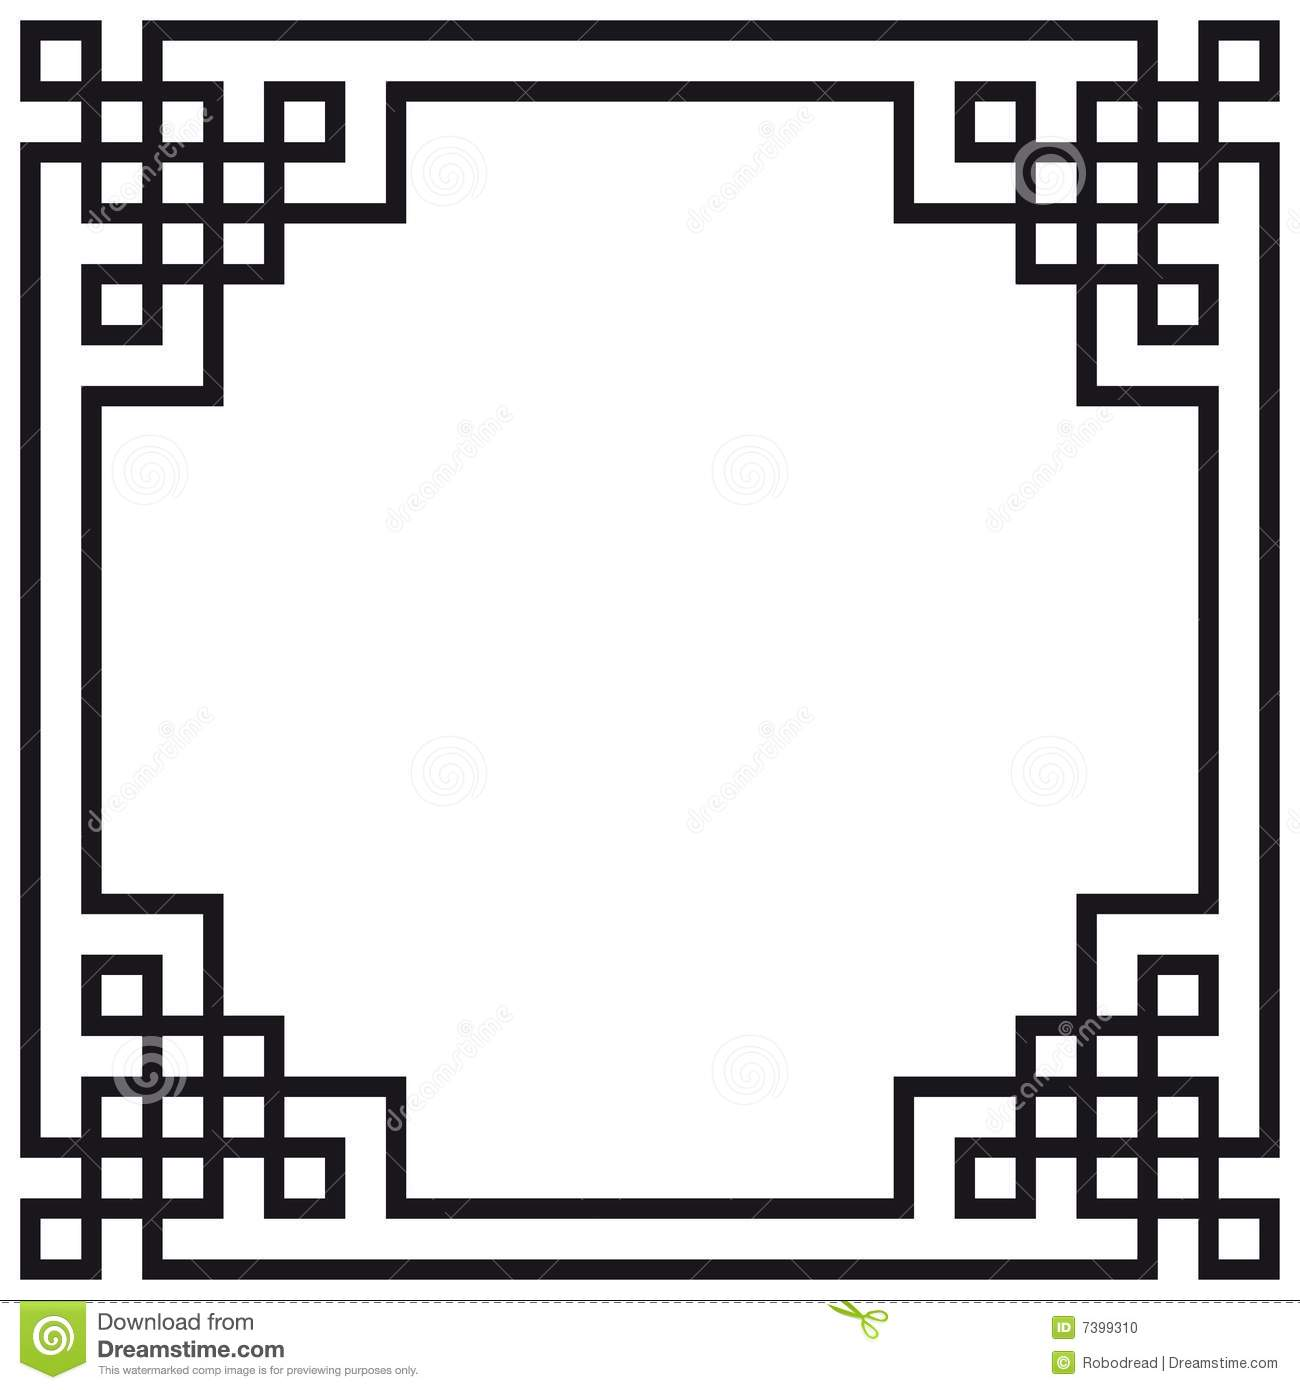 Oriental deco artex besides Art Nouveau Design Inspiration additionally 261579728634 further Photostream likewise Search. on border stencils art deco pattern